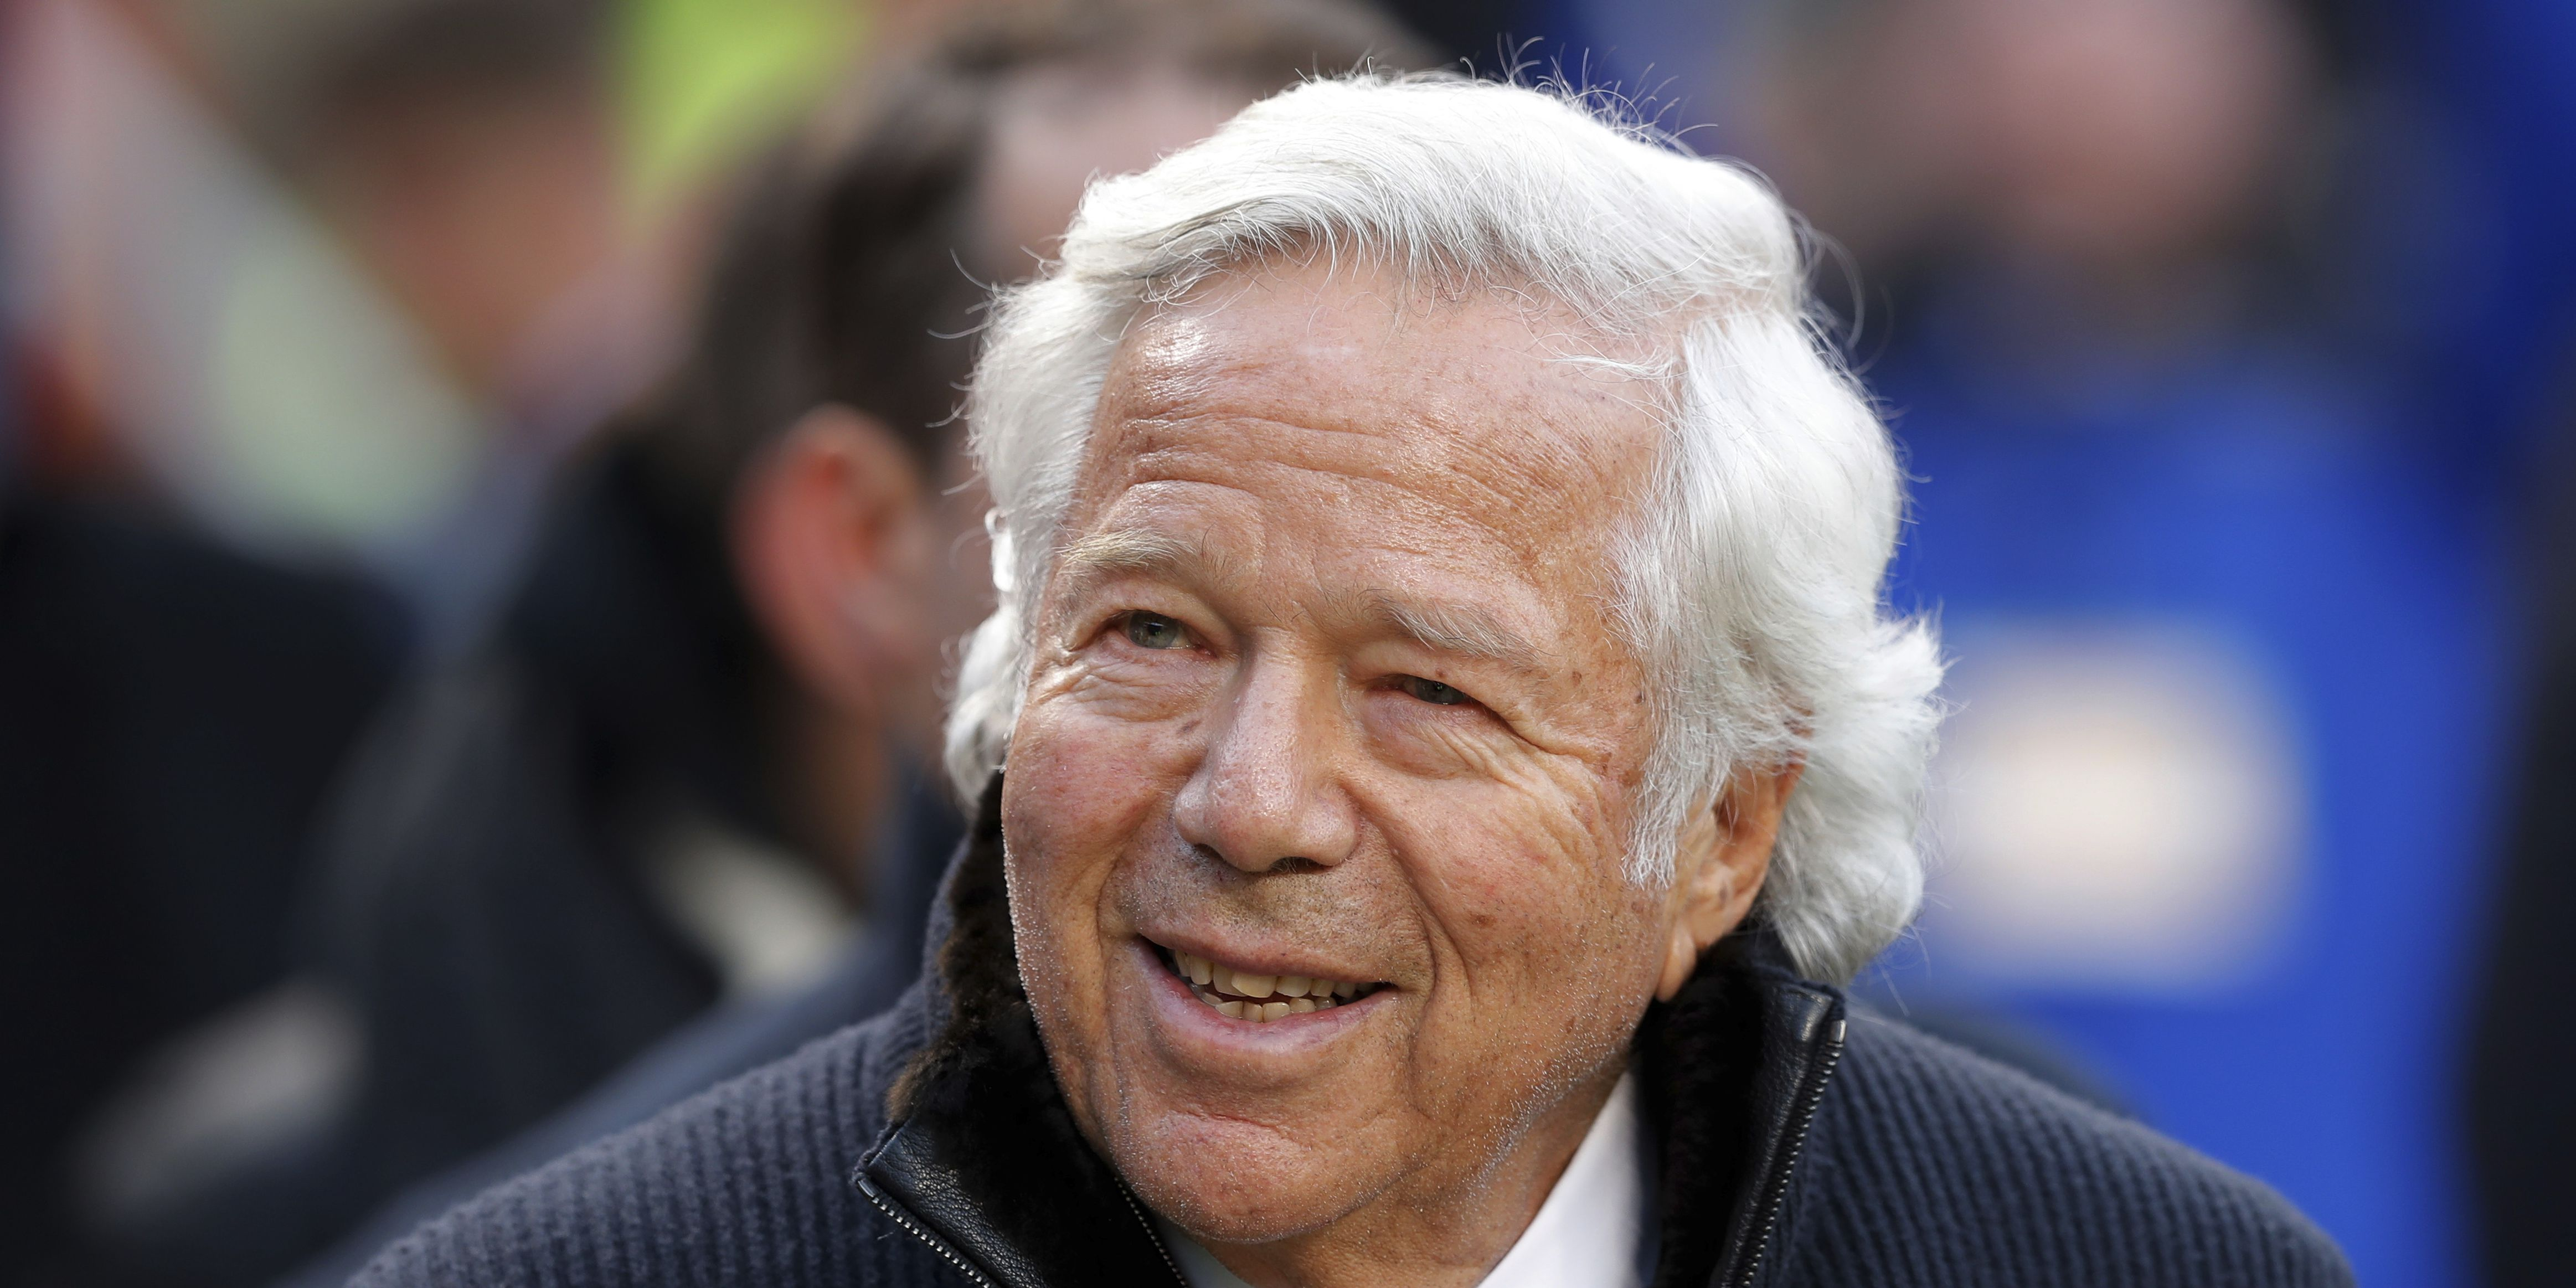 Patriots owner Bob Kraft pleads not guilty to prostitution charges